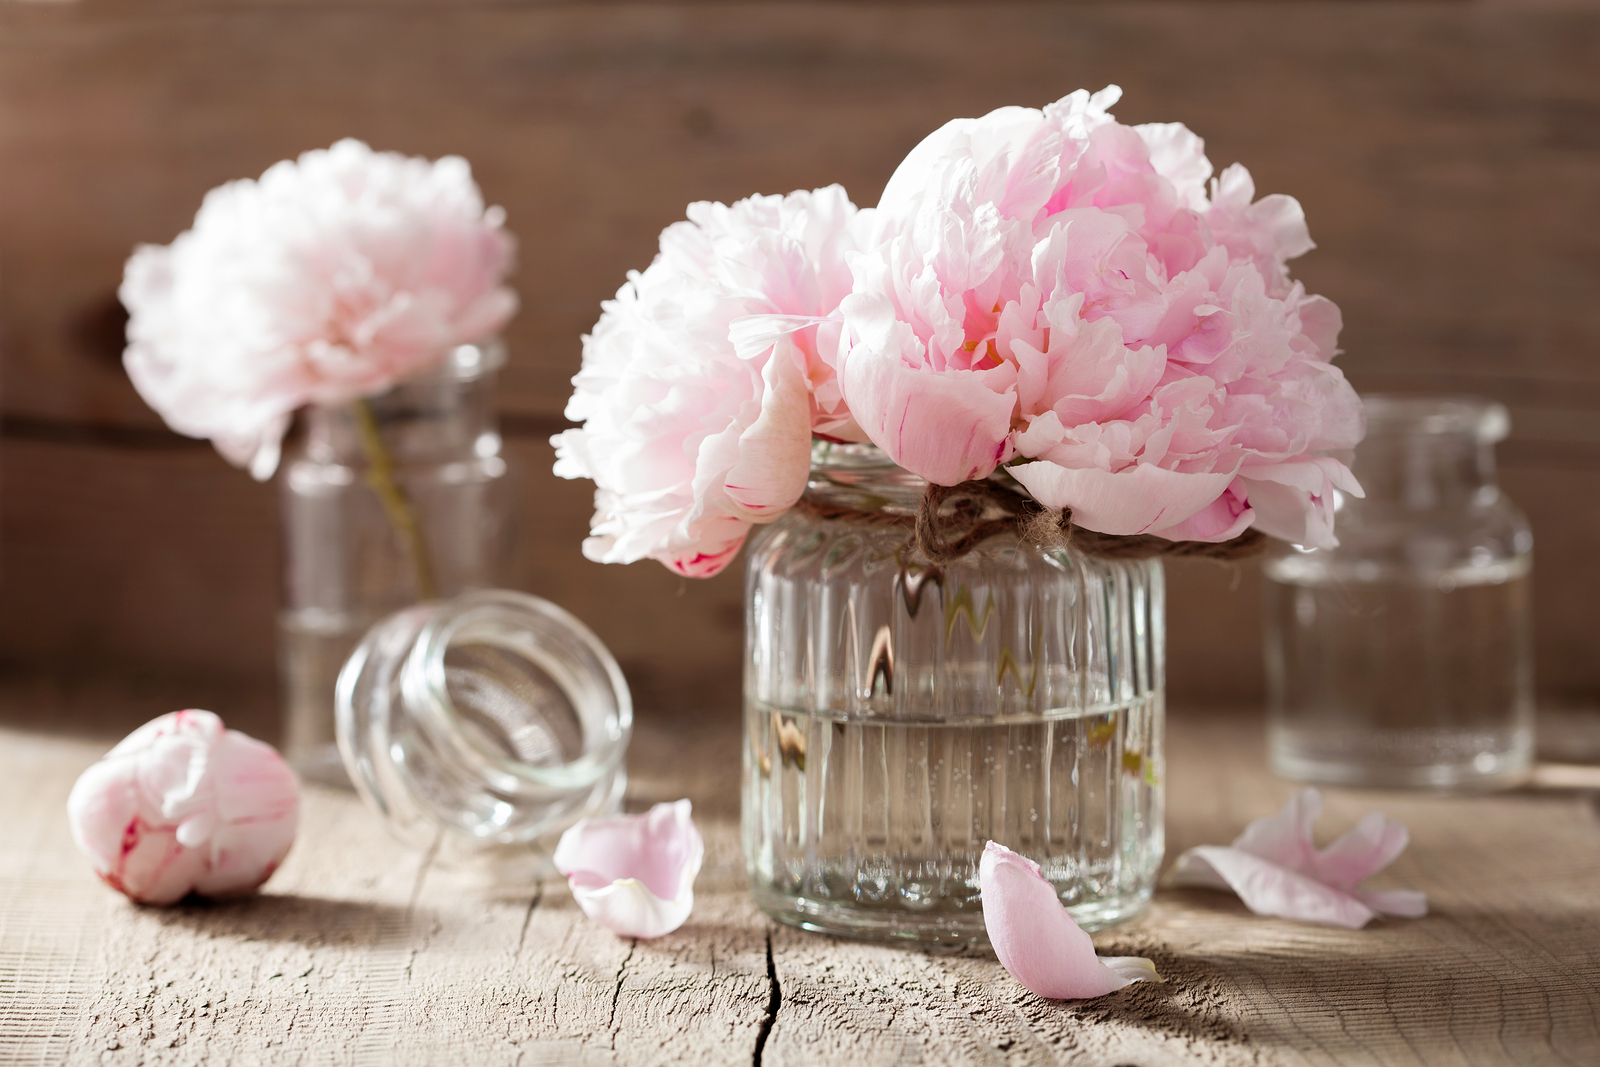 Unique Flowers To Send For Special Occasions